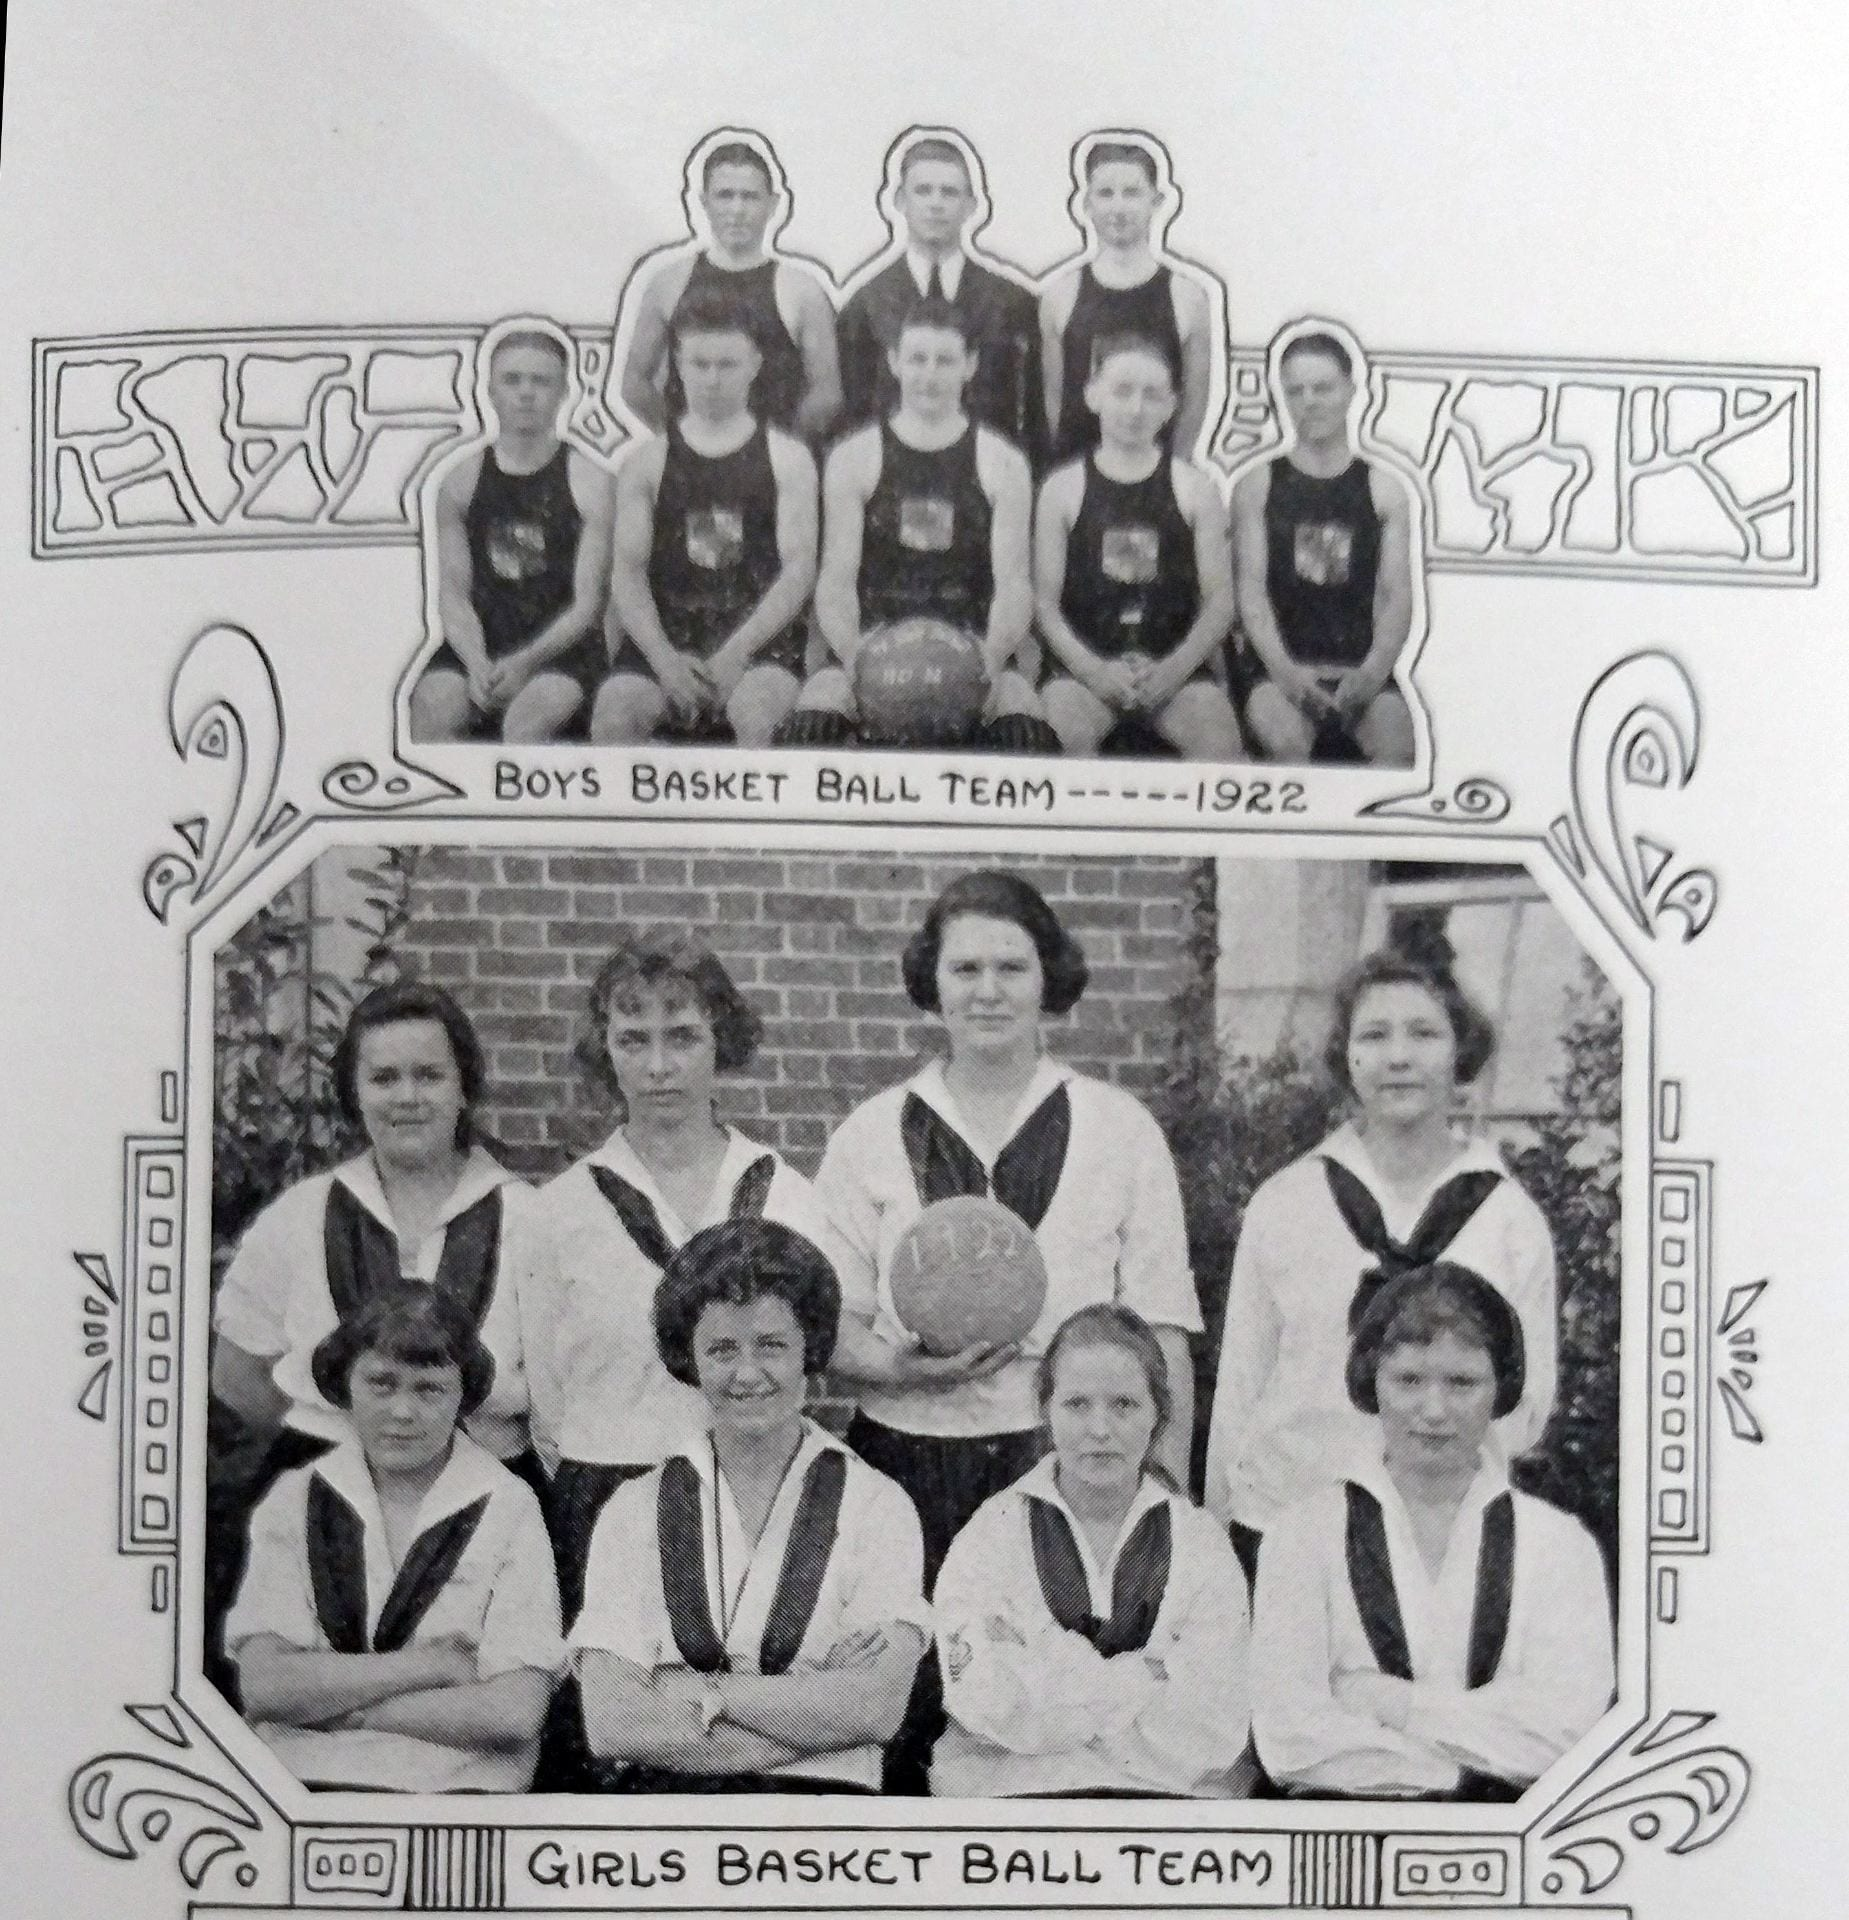 "Photograph shows team of 7 men and 1 manager in a group with words ""Boys Basket Ball Team -- 1922"" and another photo of 8 women in a group with words Girls Basket Ball Team."